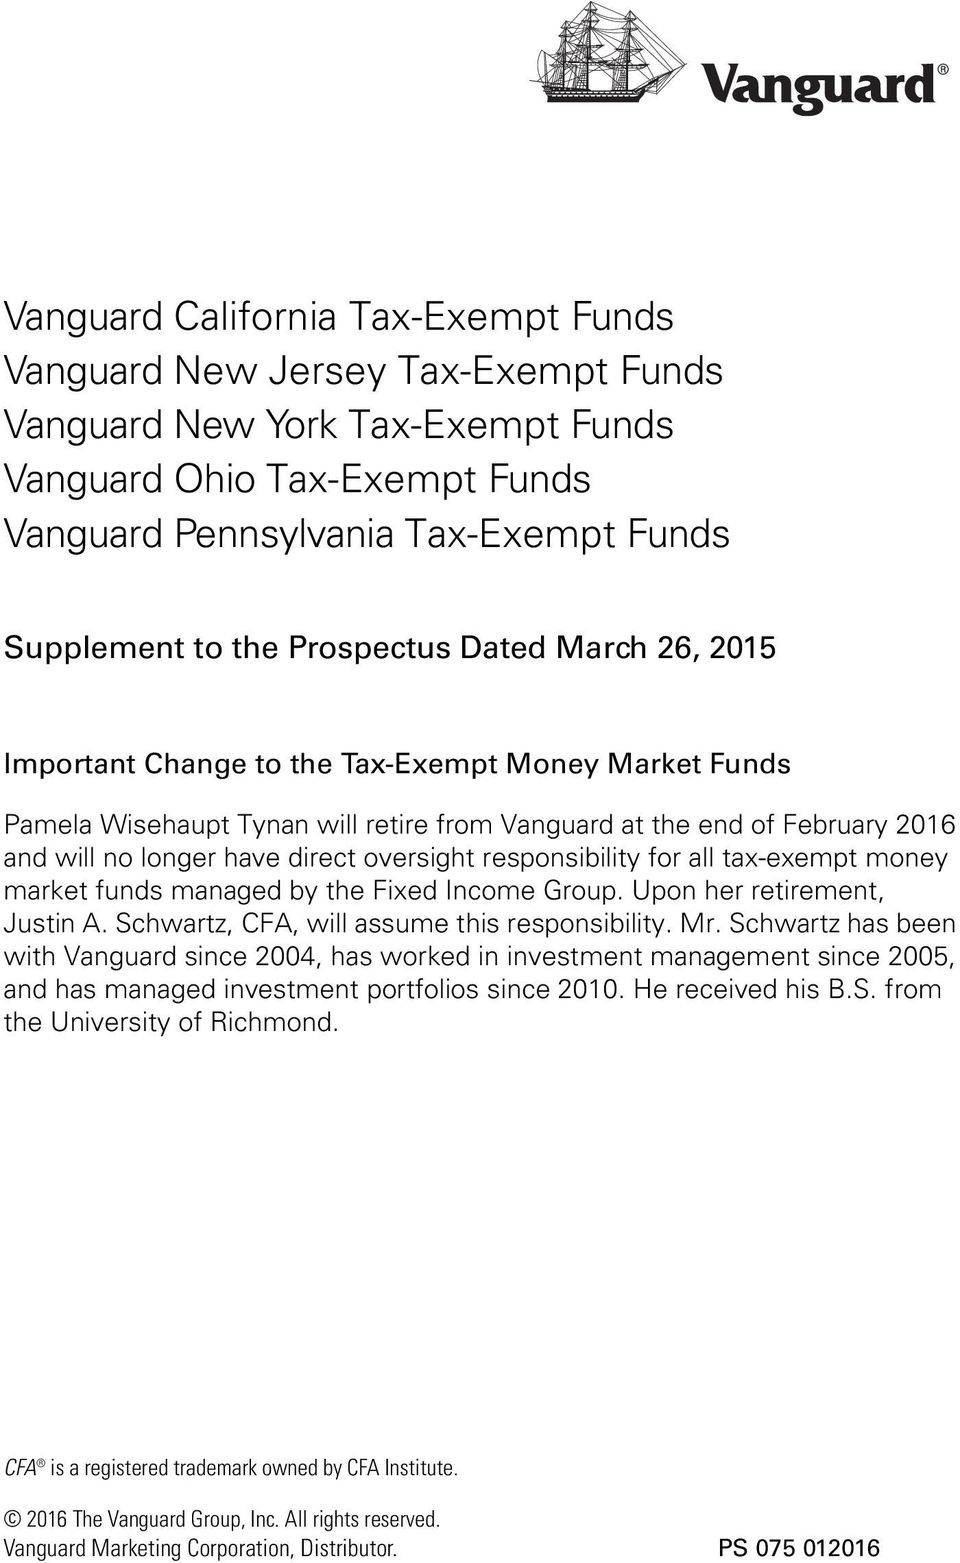 oversight responsibility for all tax-exempt money market funds managed by the Fixed Income Group. Upon her retirement, Justin A. Schwartz, CFA, will assume this responsibility. Mr.